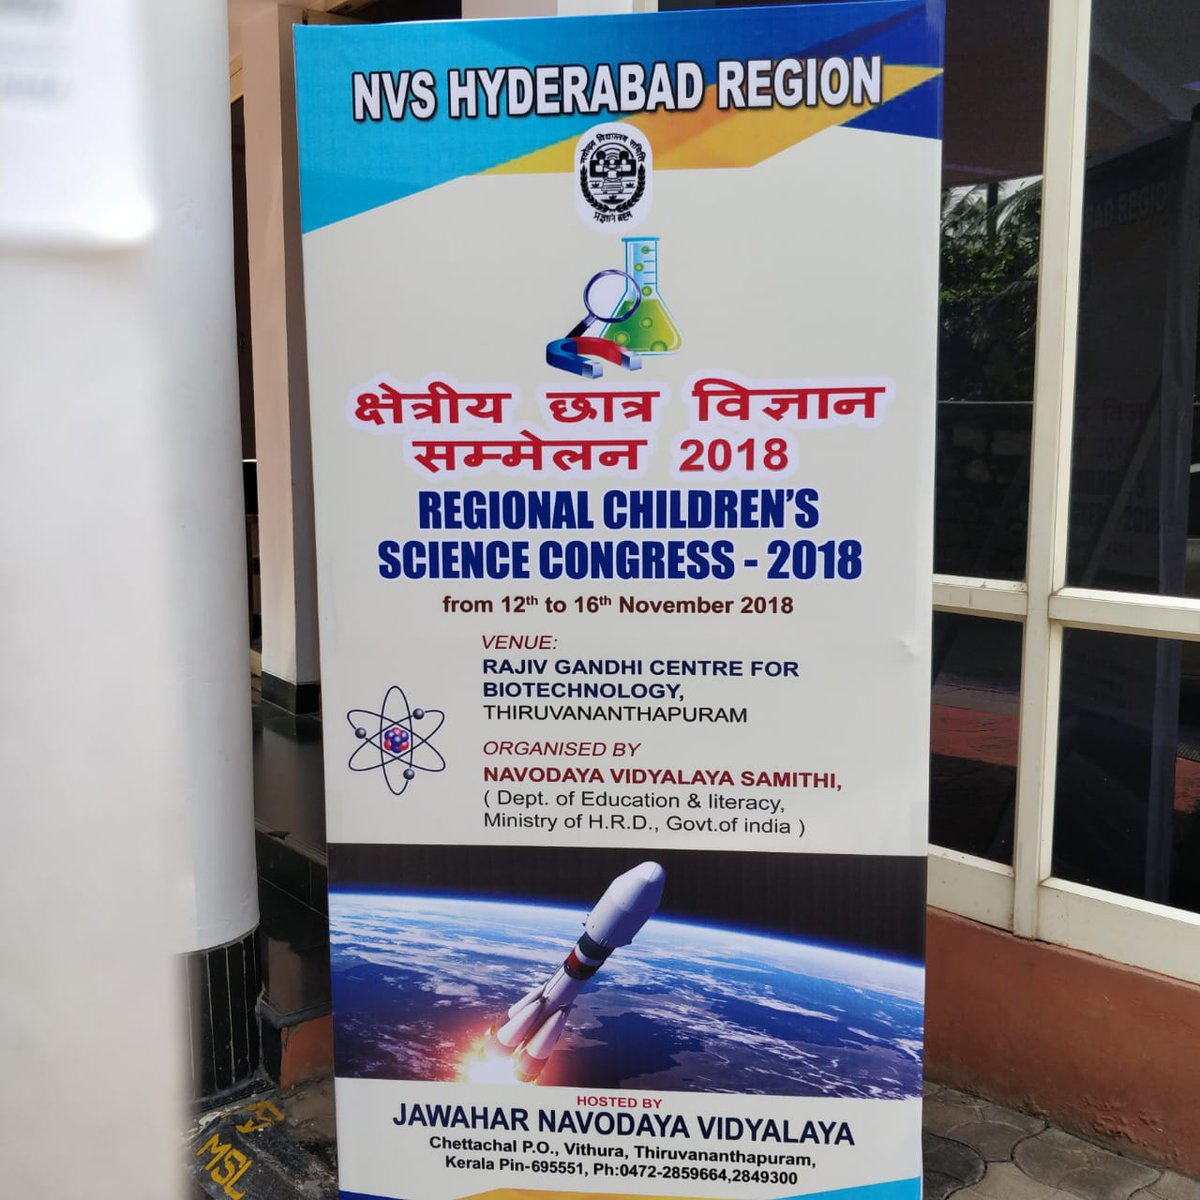 The Science Of Getting Kids Organized >> Rgcb Trivandrum On Twitter Regional Children S Science Congress